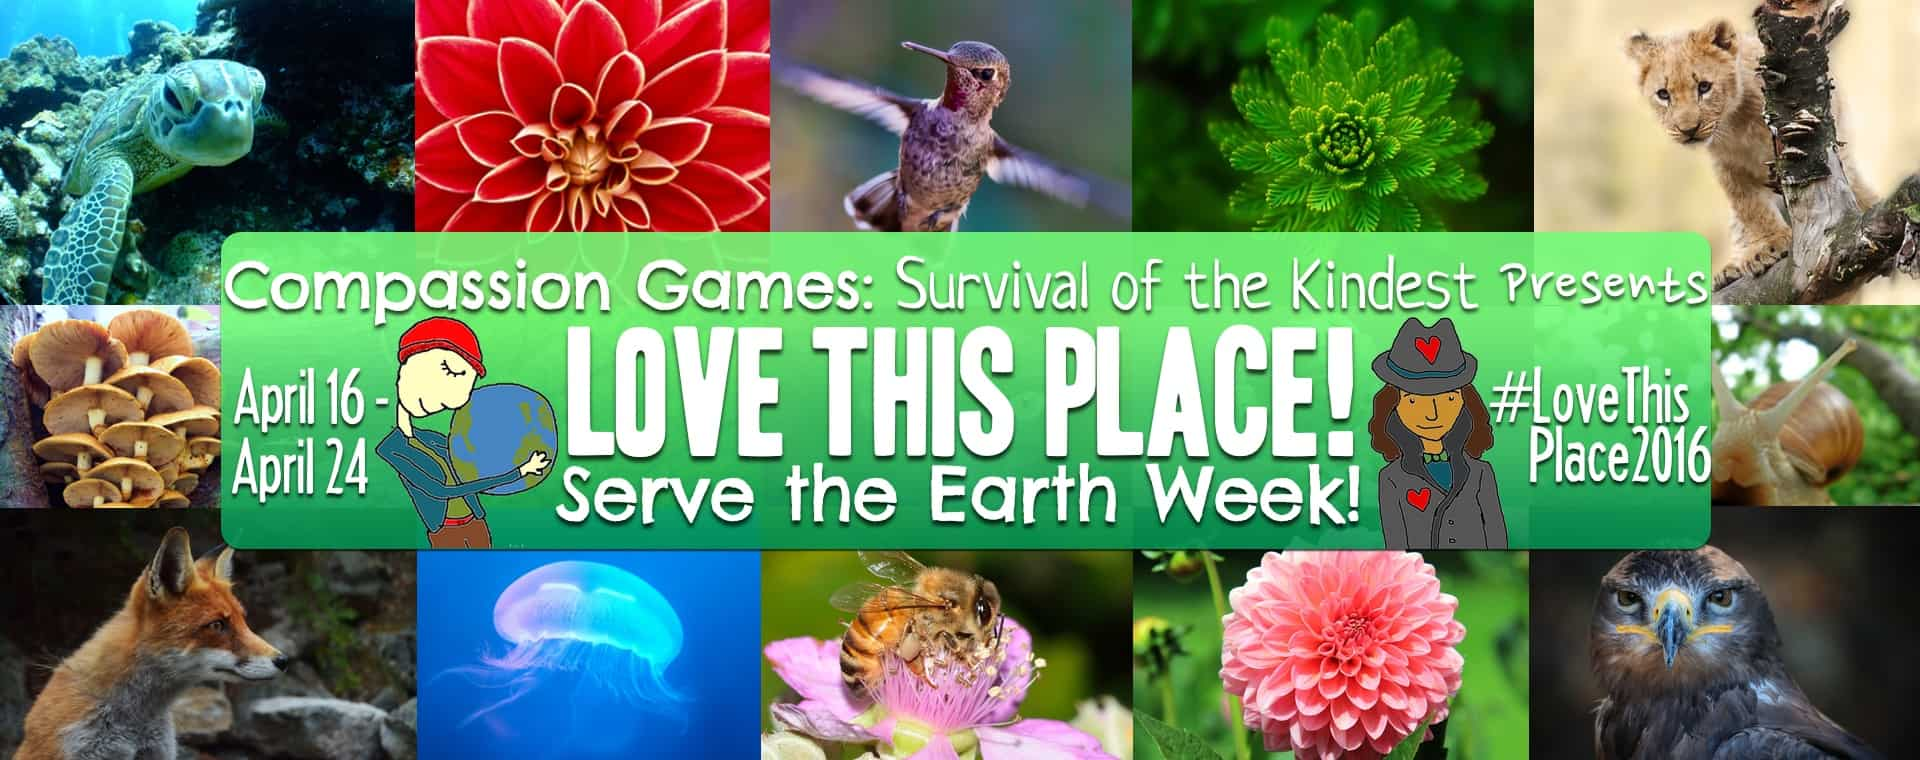 The Summary and Highlights of Earth Week 2016